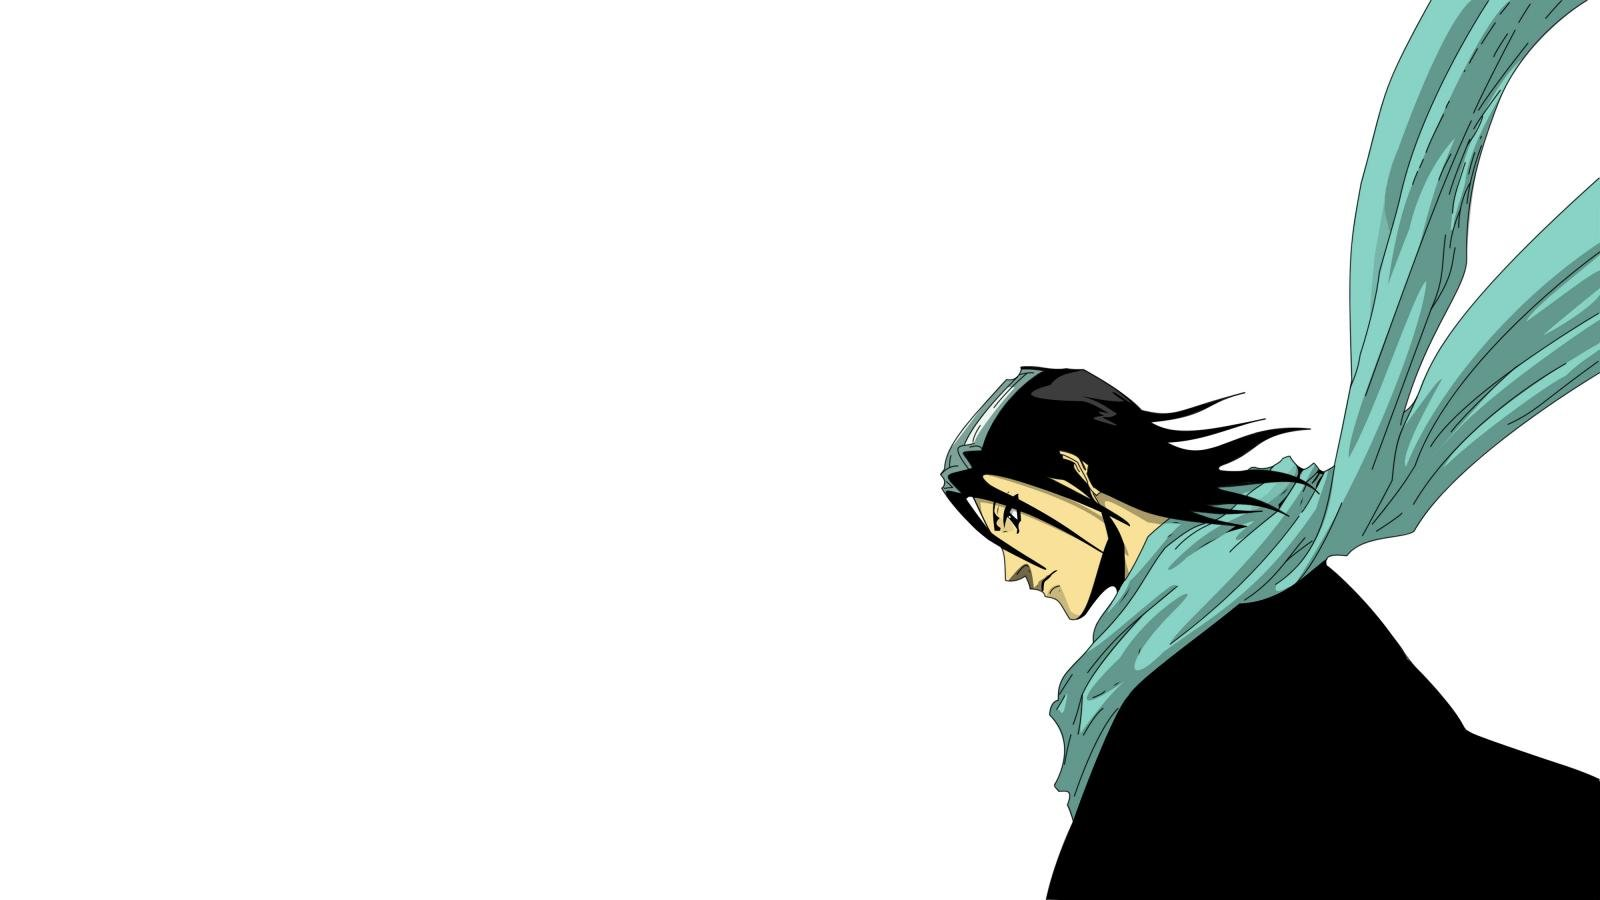 Free download Byakuya Kuchiki background ID:416703 hd 1600x900 for computer